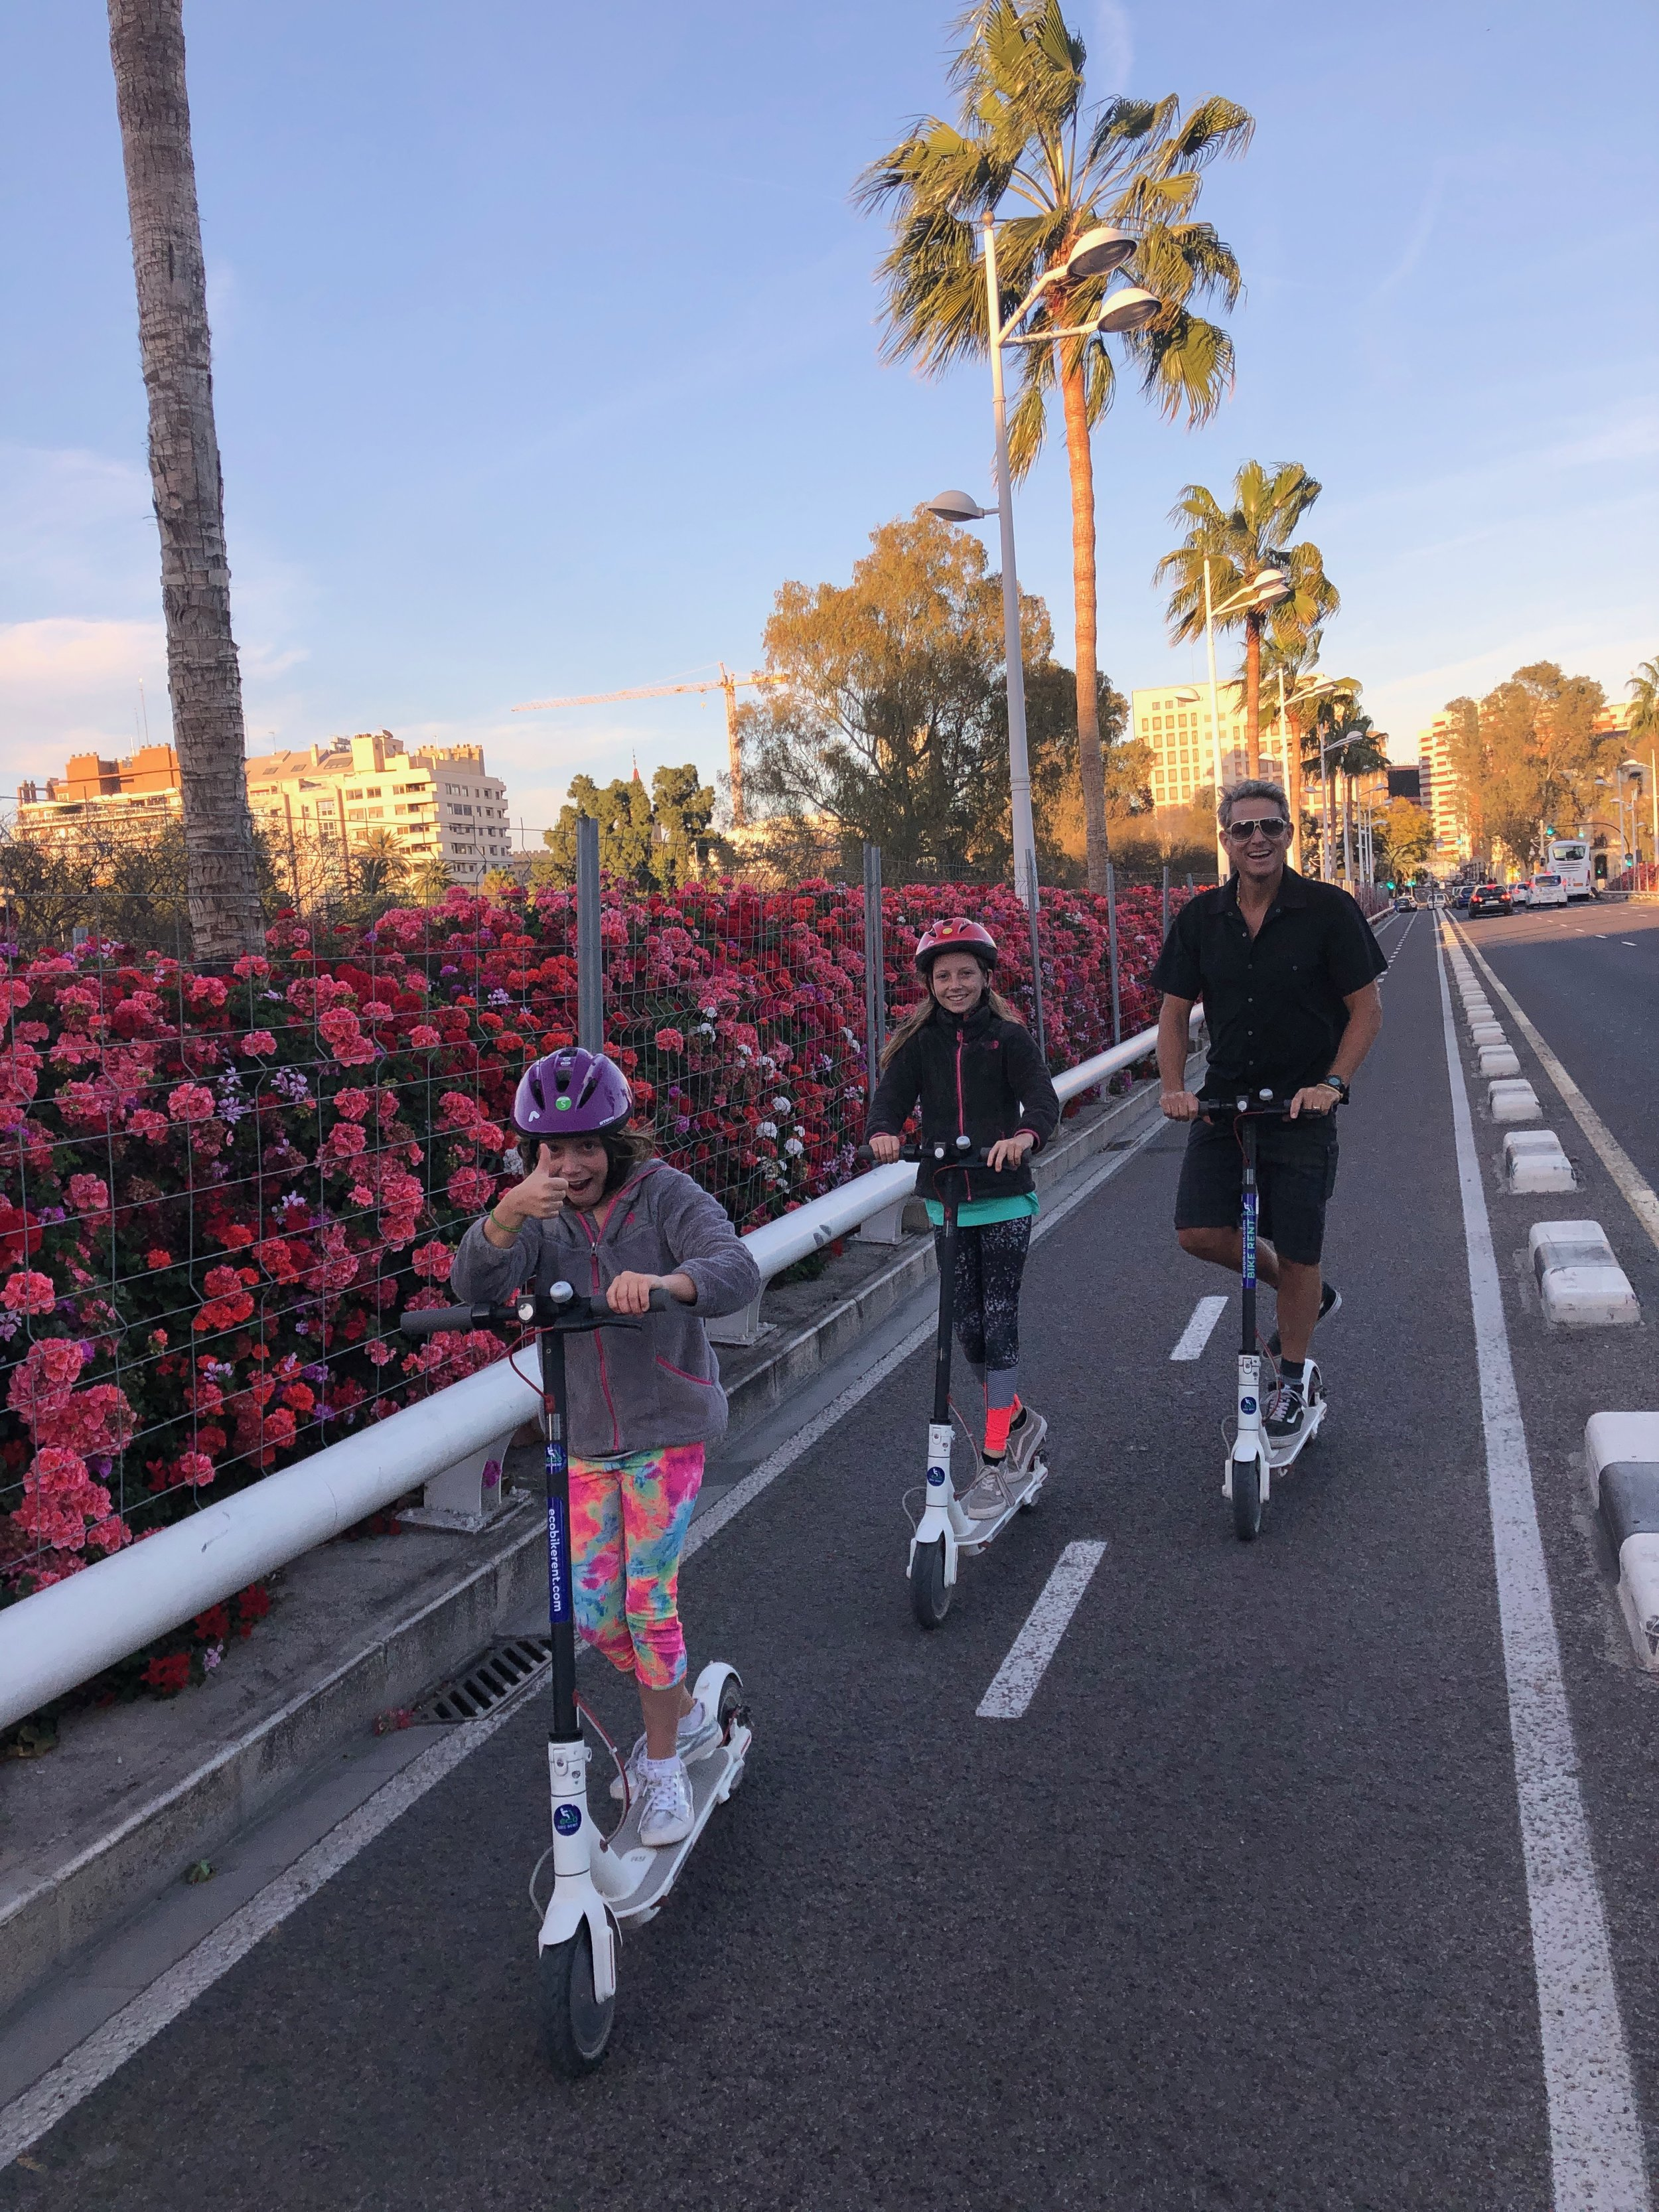 We loved the scooters - they were so much fun!